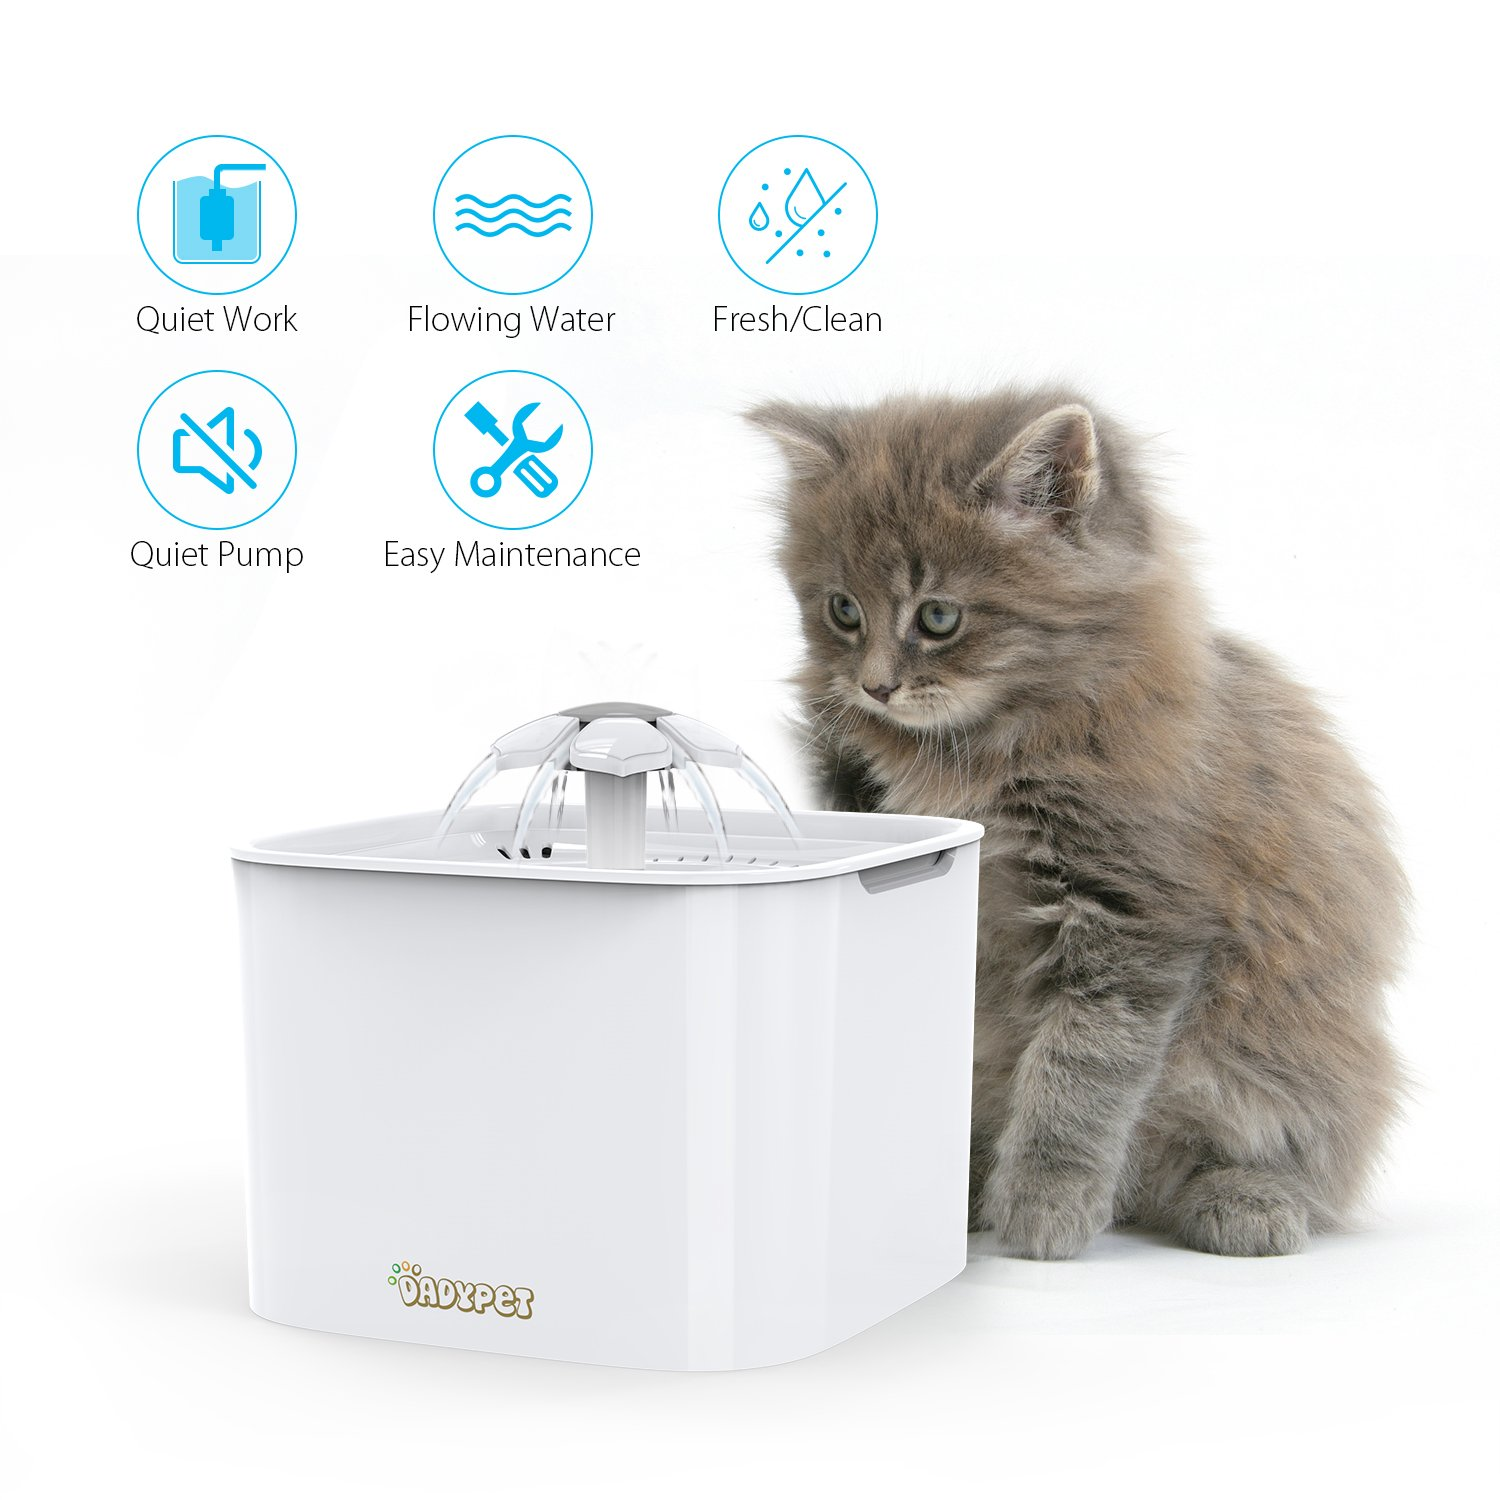 Distributore Fontana Fontanella Cat Mate Abbeveratoio Cani E Gatti Cat Supplies